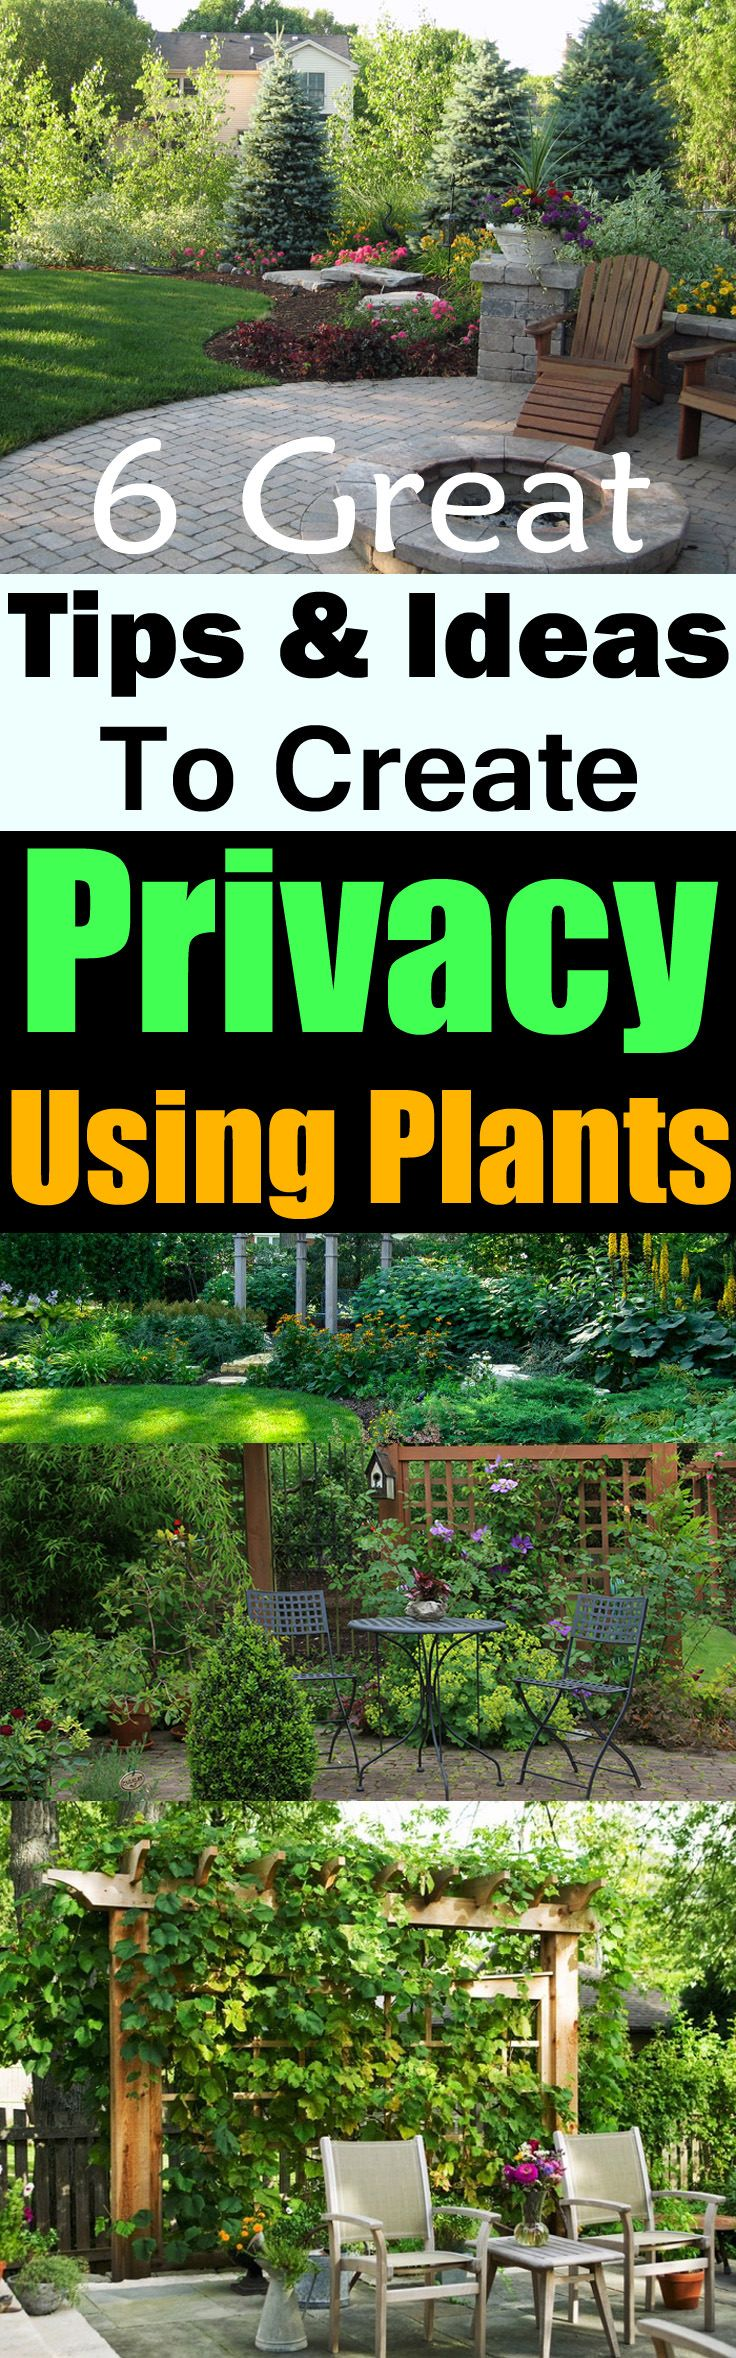 6 Great Tips And Ideas To Create Privacy Using Plants | Plants ...